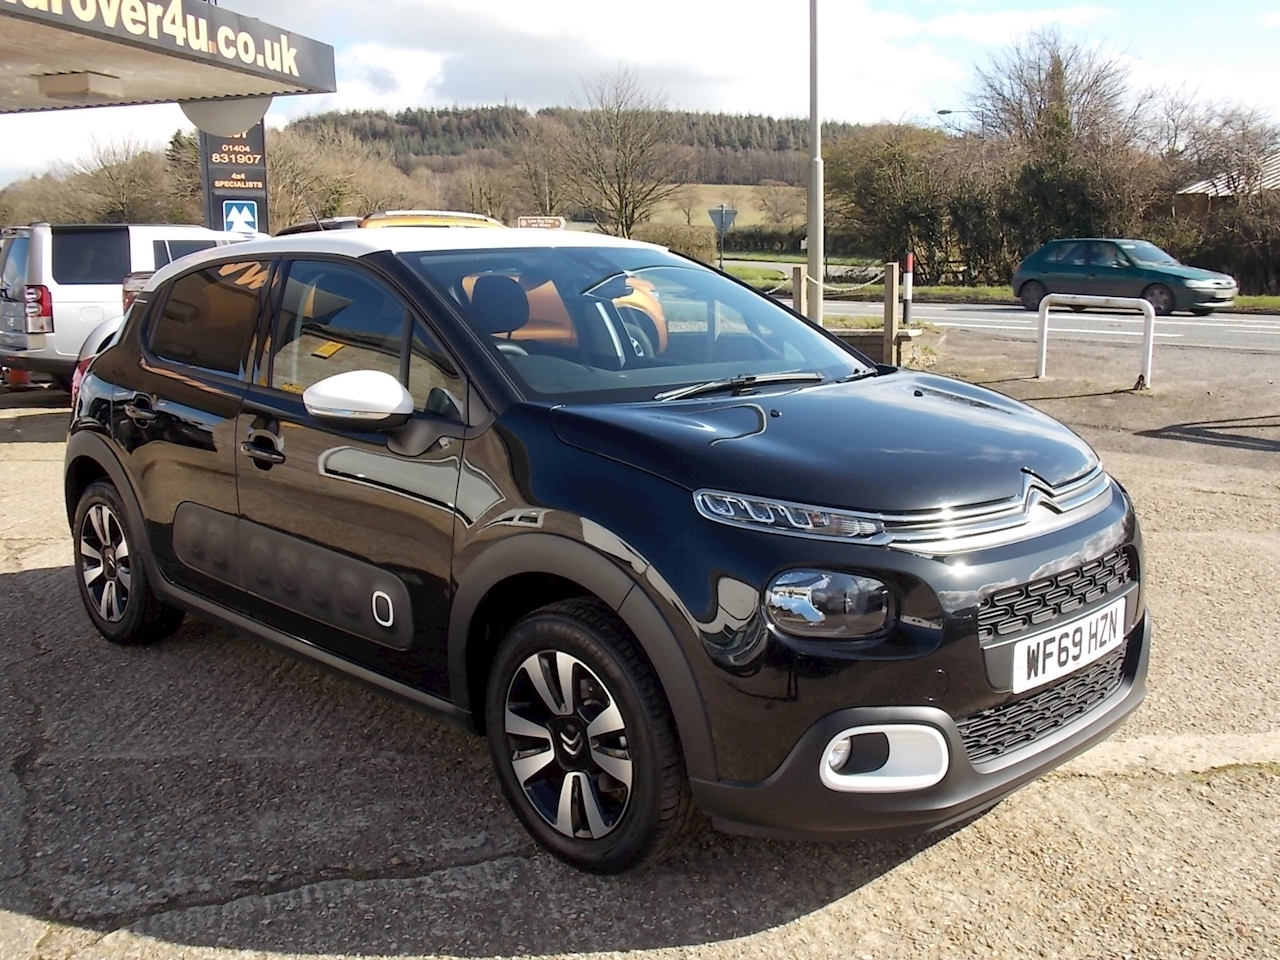 Citroen C3 Flair s/s 1.2 5dr Hatchback Manual Petrol